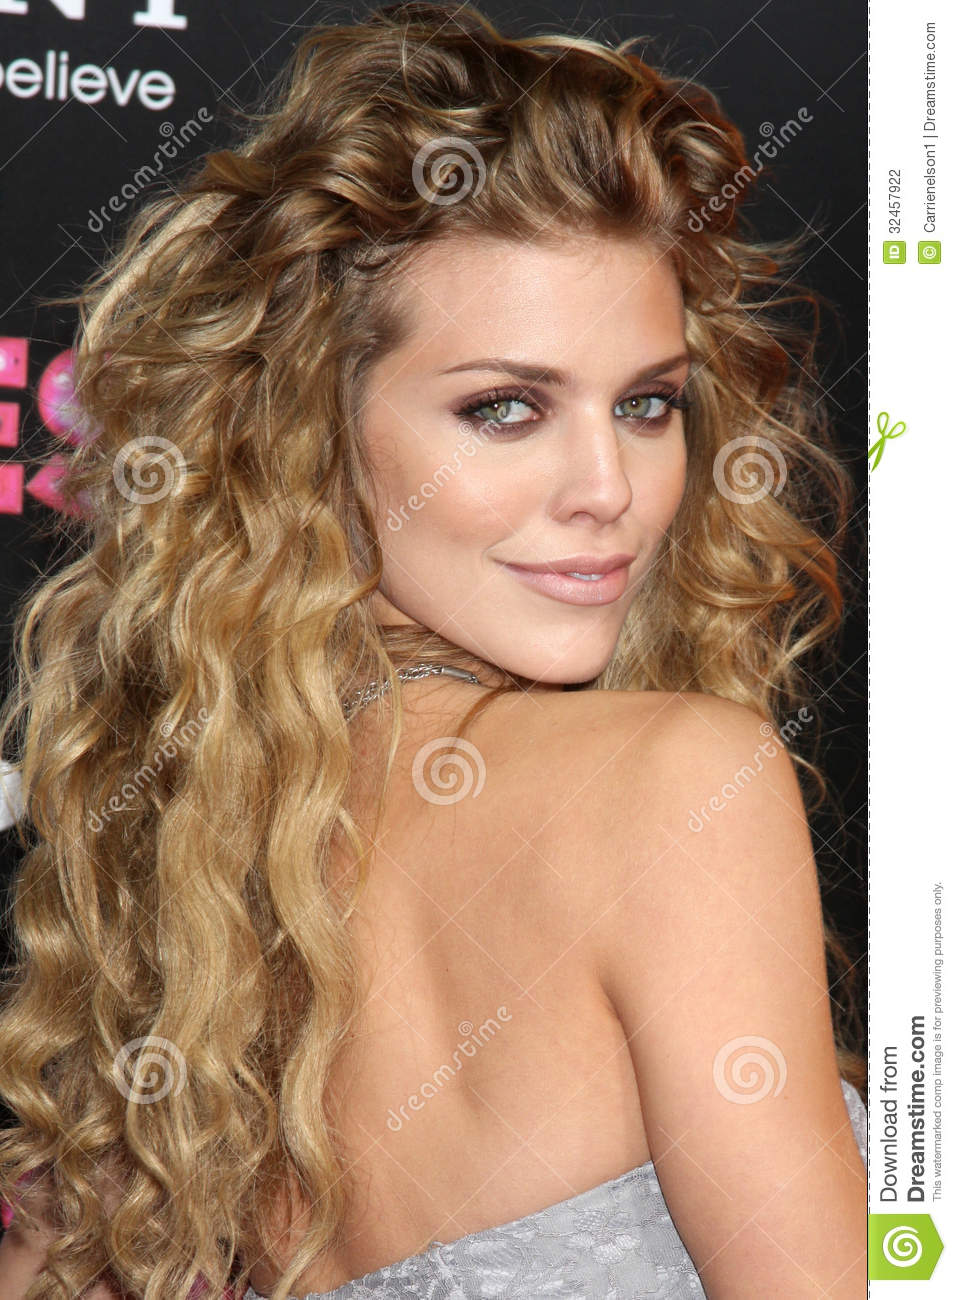 annalynne mccord height and weightannalynne mccord instagram, annalynne mccord vk, annalynne mccord tumblr, annalynne mccord gif, annalynne mccord 2016, annalynne mccord imdb, annalynne mccord hair, annalynne mccord wiki, annalynne mccord biceps, annalynne mccord body statistics, annalynne mccord filmographie, annalynne mccord age, annalynne mccord hot pic, annalynne mccord gallery, annalynne mccord bellazon, annalynne mccord fansite, annalynne mccord wedding, annalynne mccord listal, annalynne mccord picture, annalynne mccord height and weight